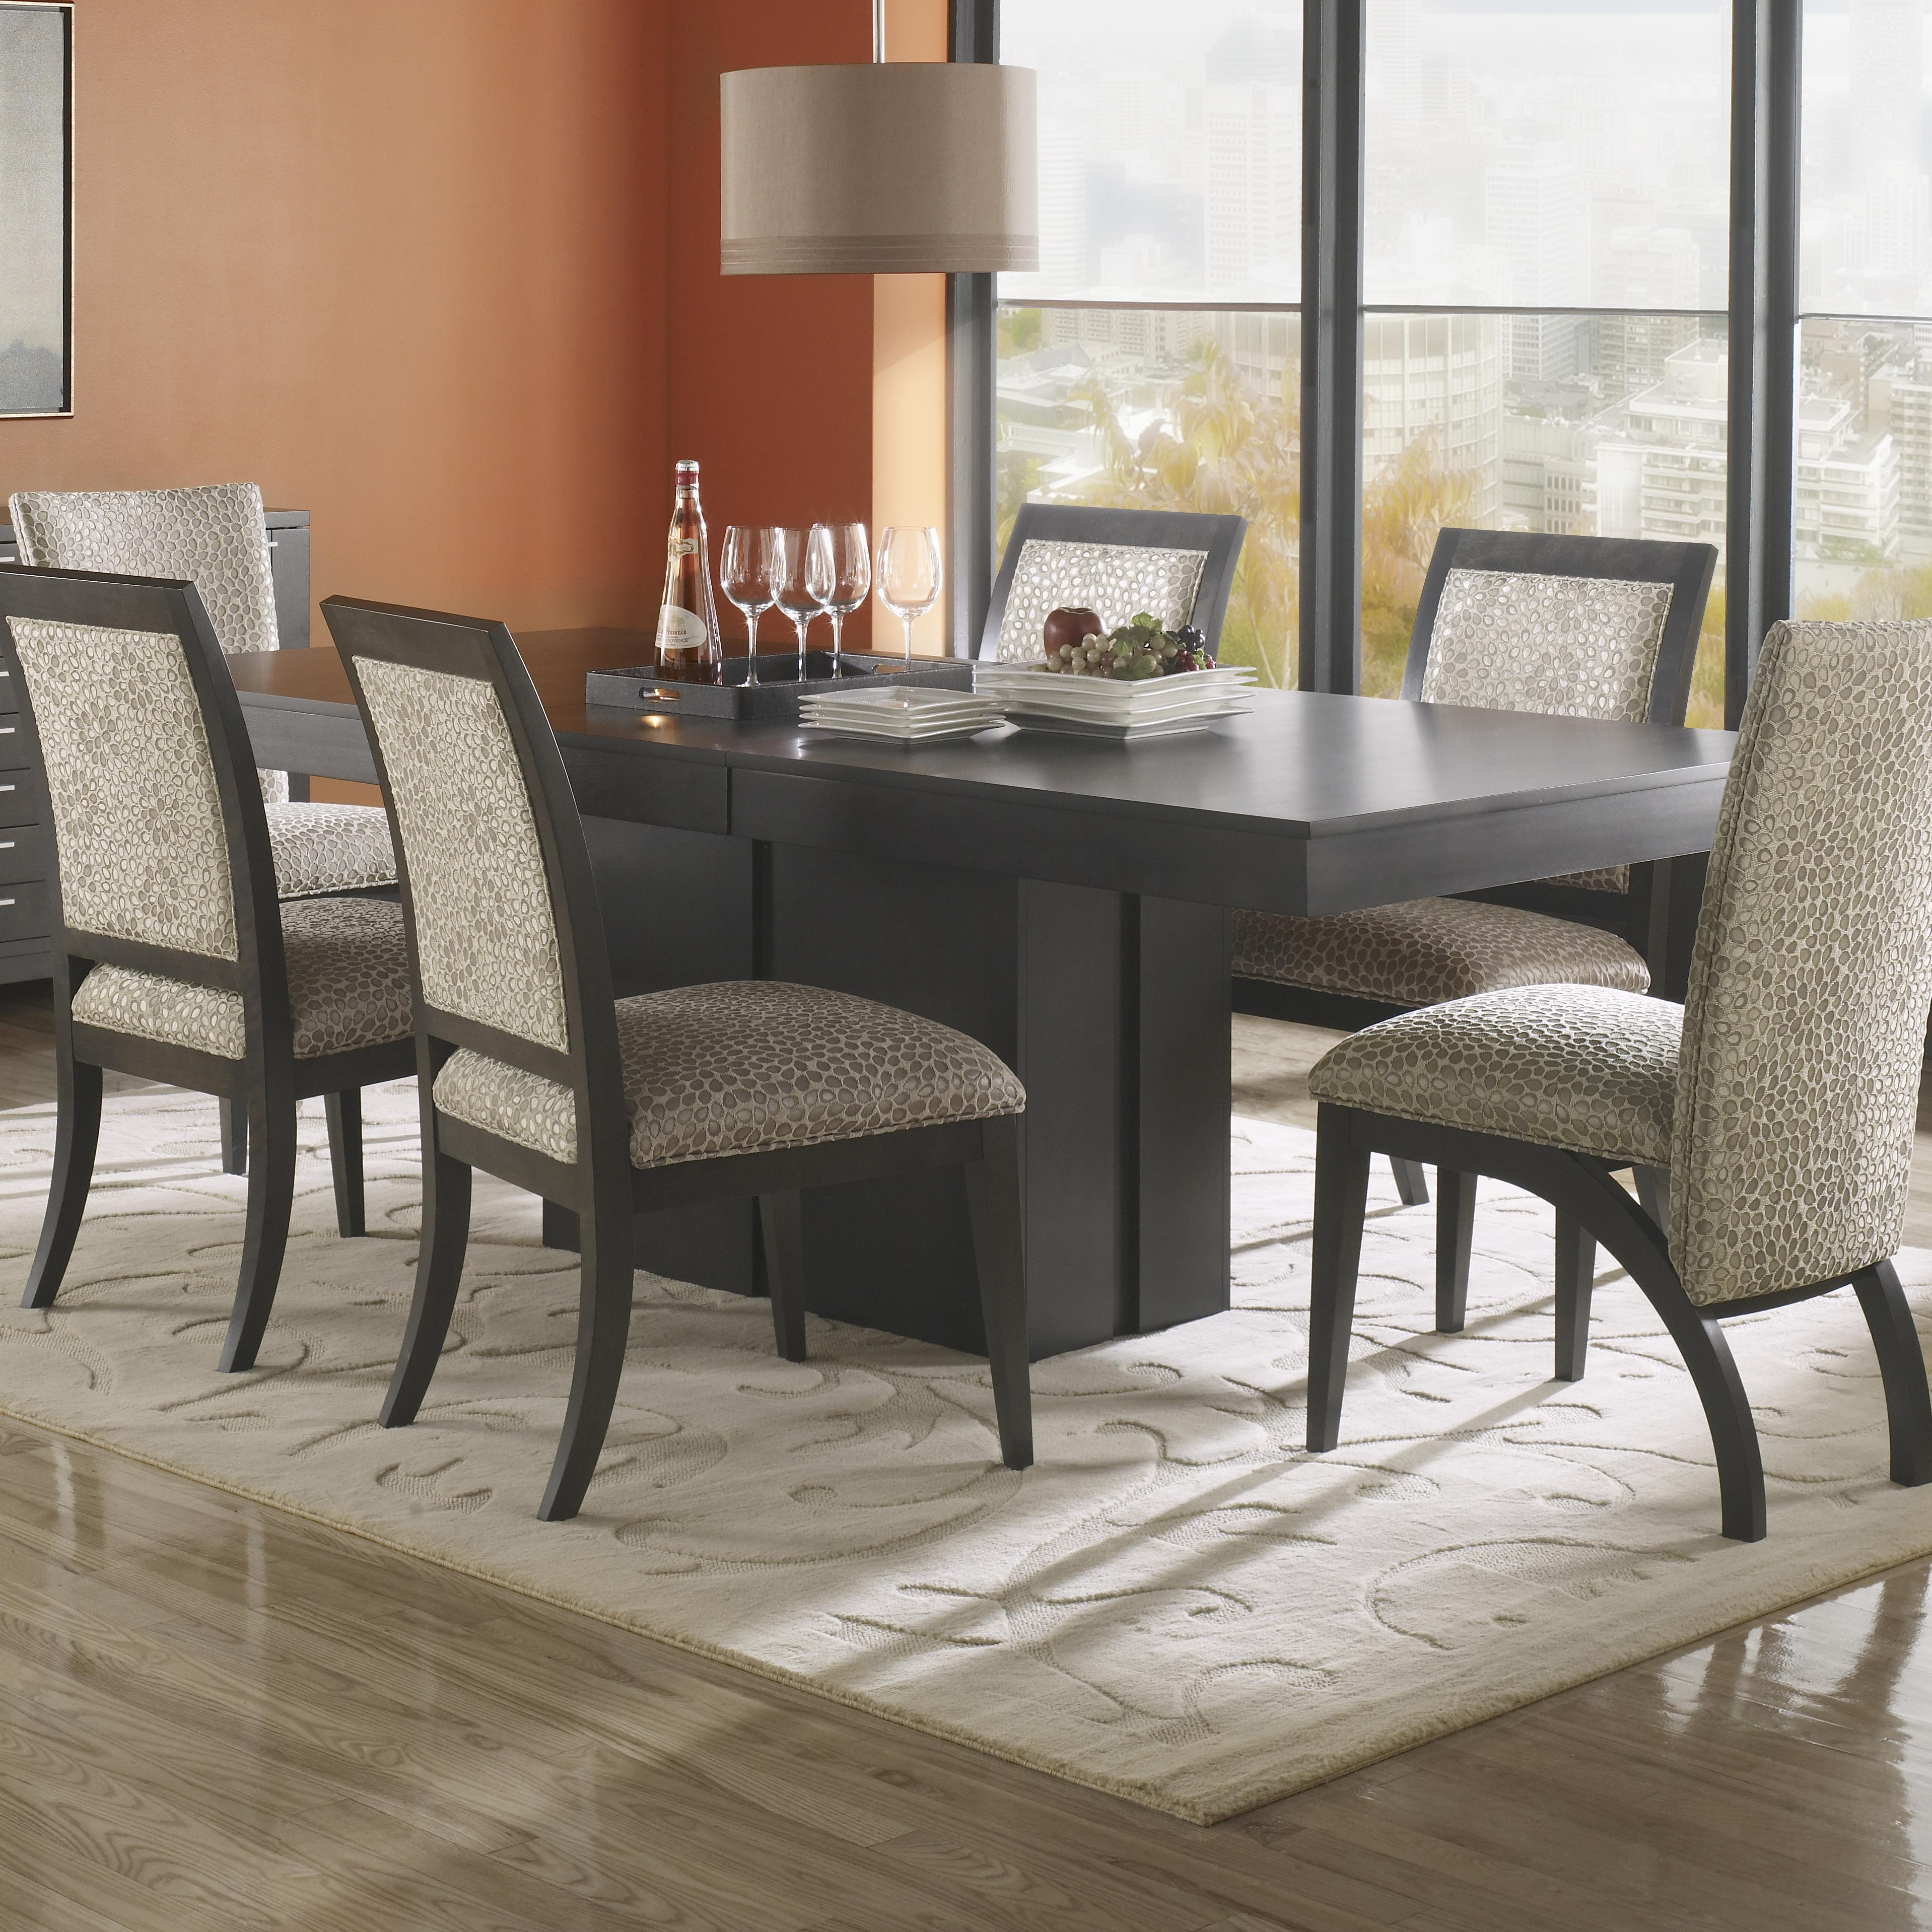 canadel custom dining tre042685959mmw61 bas customizable rectangular table with pedestal base. Black Bedroom Furniture Sets. Home Design Ideas